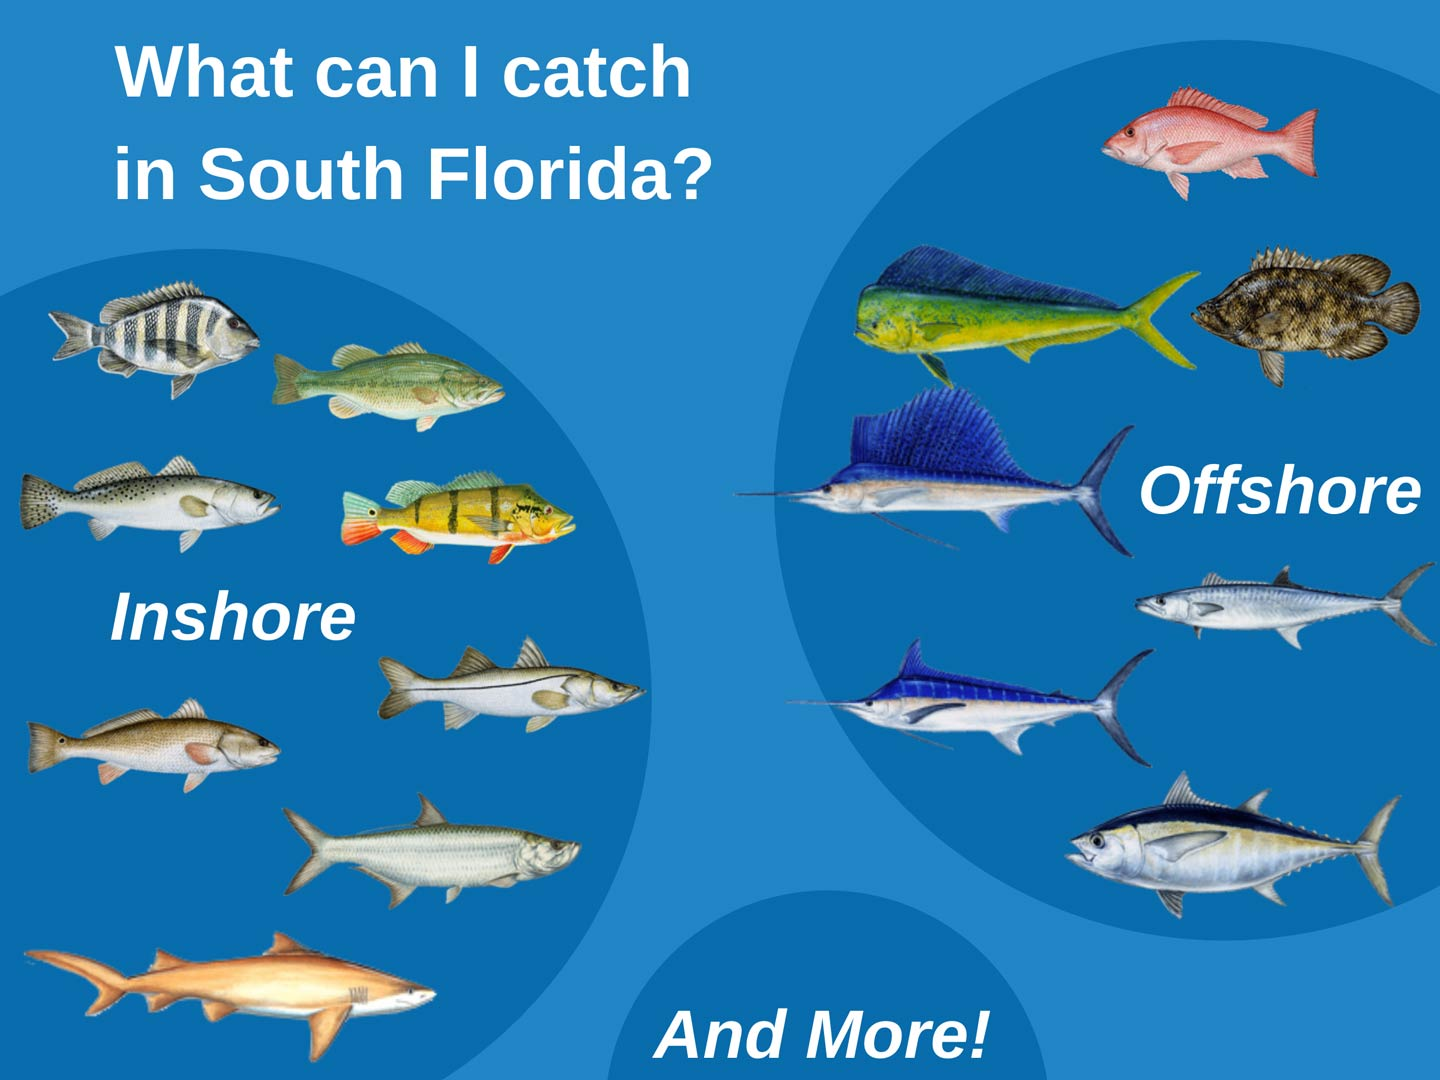 An infographic showing the top fish targets in South Florida, including Snook, Tarpon, Redfish, Trout, Largemouth Bass, Red Snapper, Grouper, Mahi, Marlin, Sailfish, and more